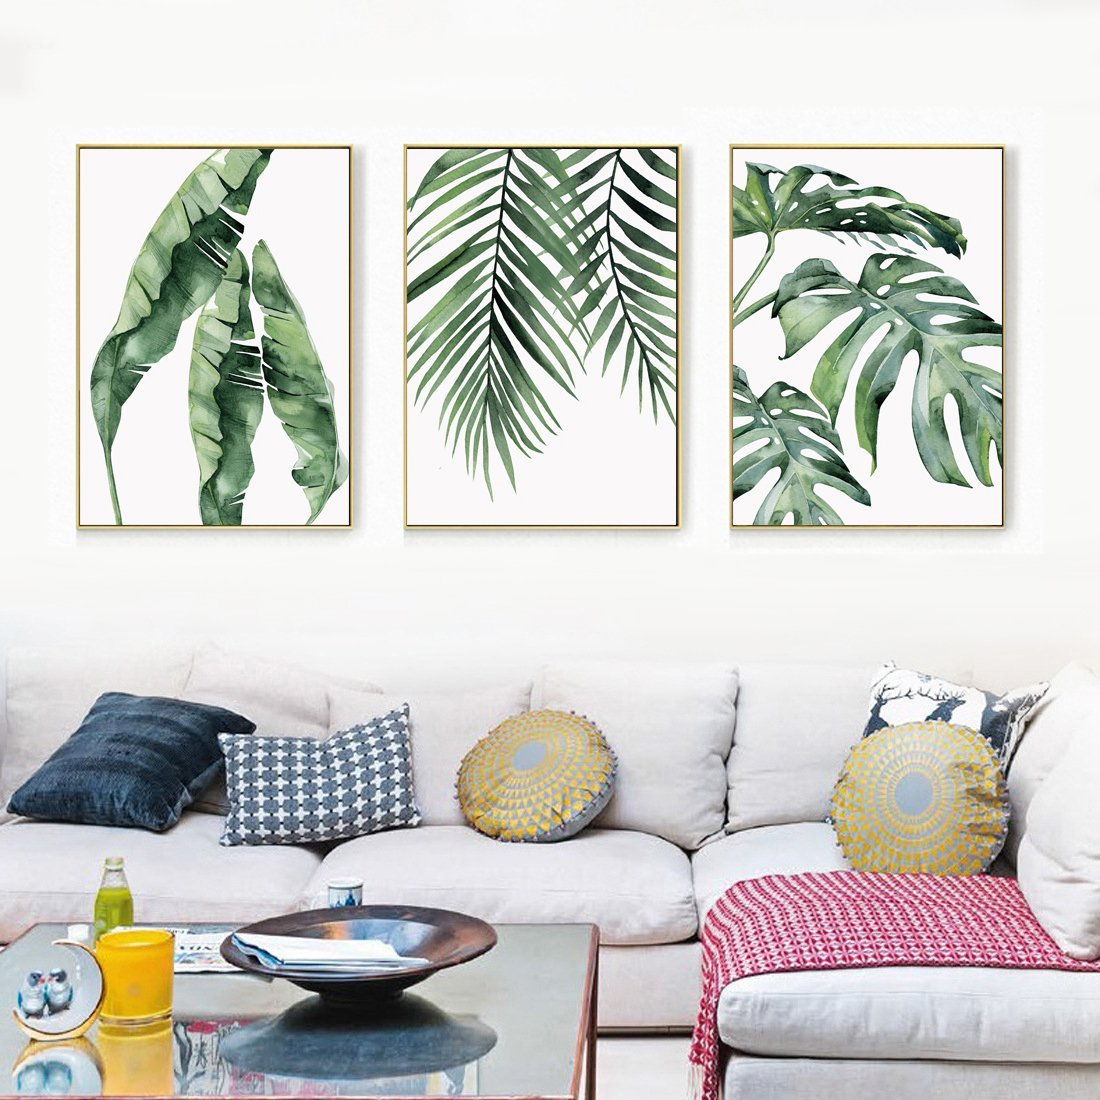 Latest Trend Paintings For Living Room Trend Watercolor Banana, Palm u0026 Monstera Leaf Canvas Print, Wall Art,  Poster, Airbnb Home Decor. Sofa - Cafe - Office - Hotel Painting,  Housewarming Gift.